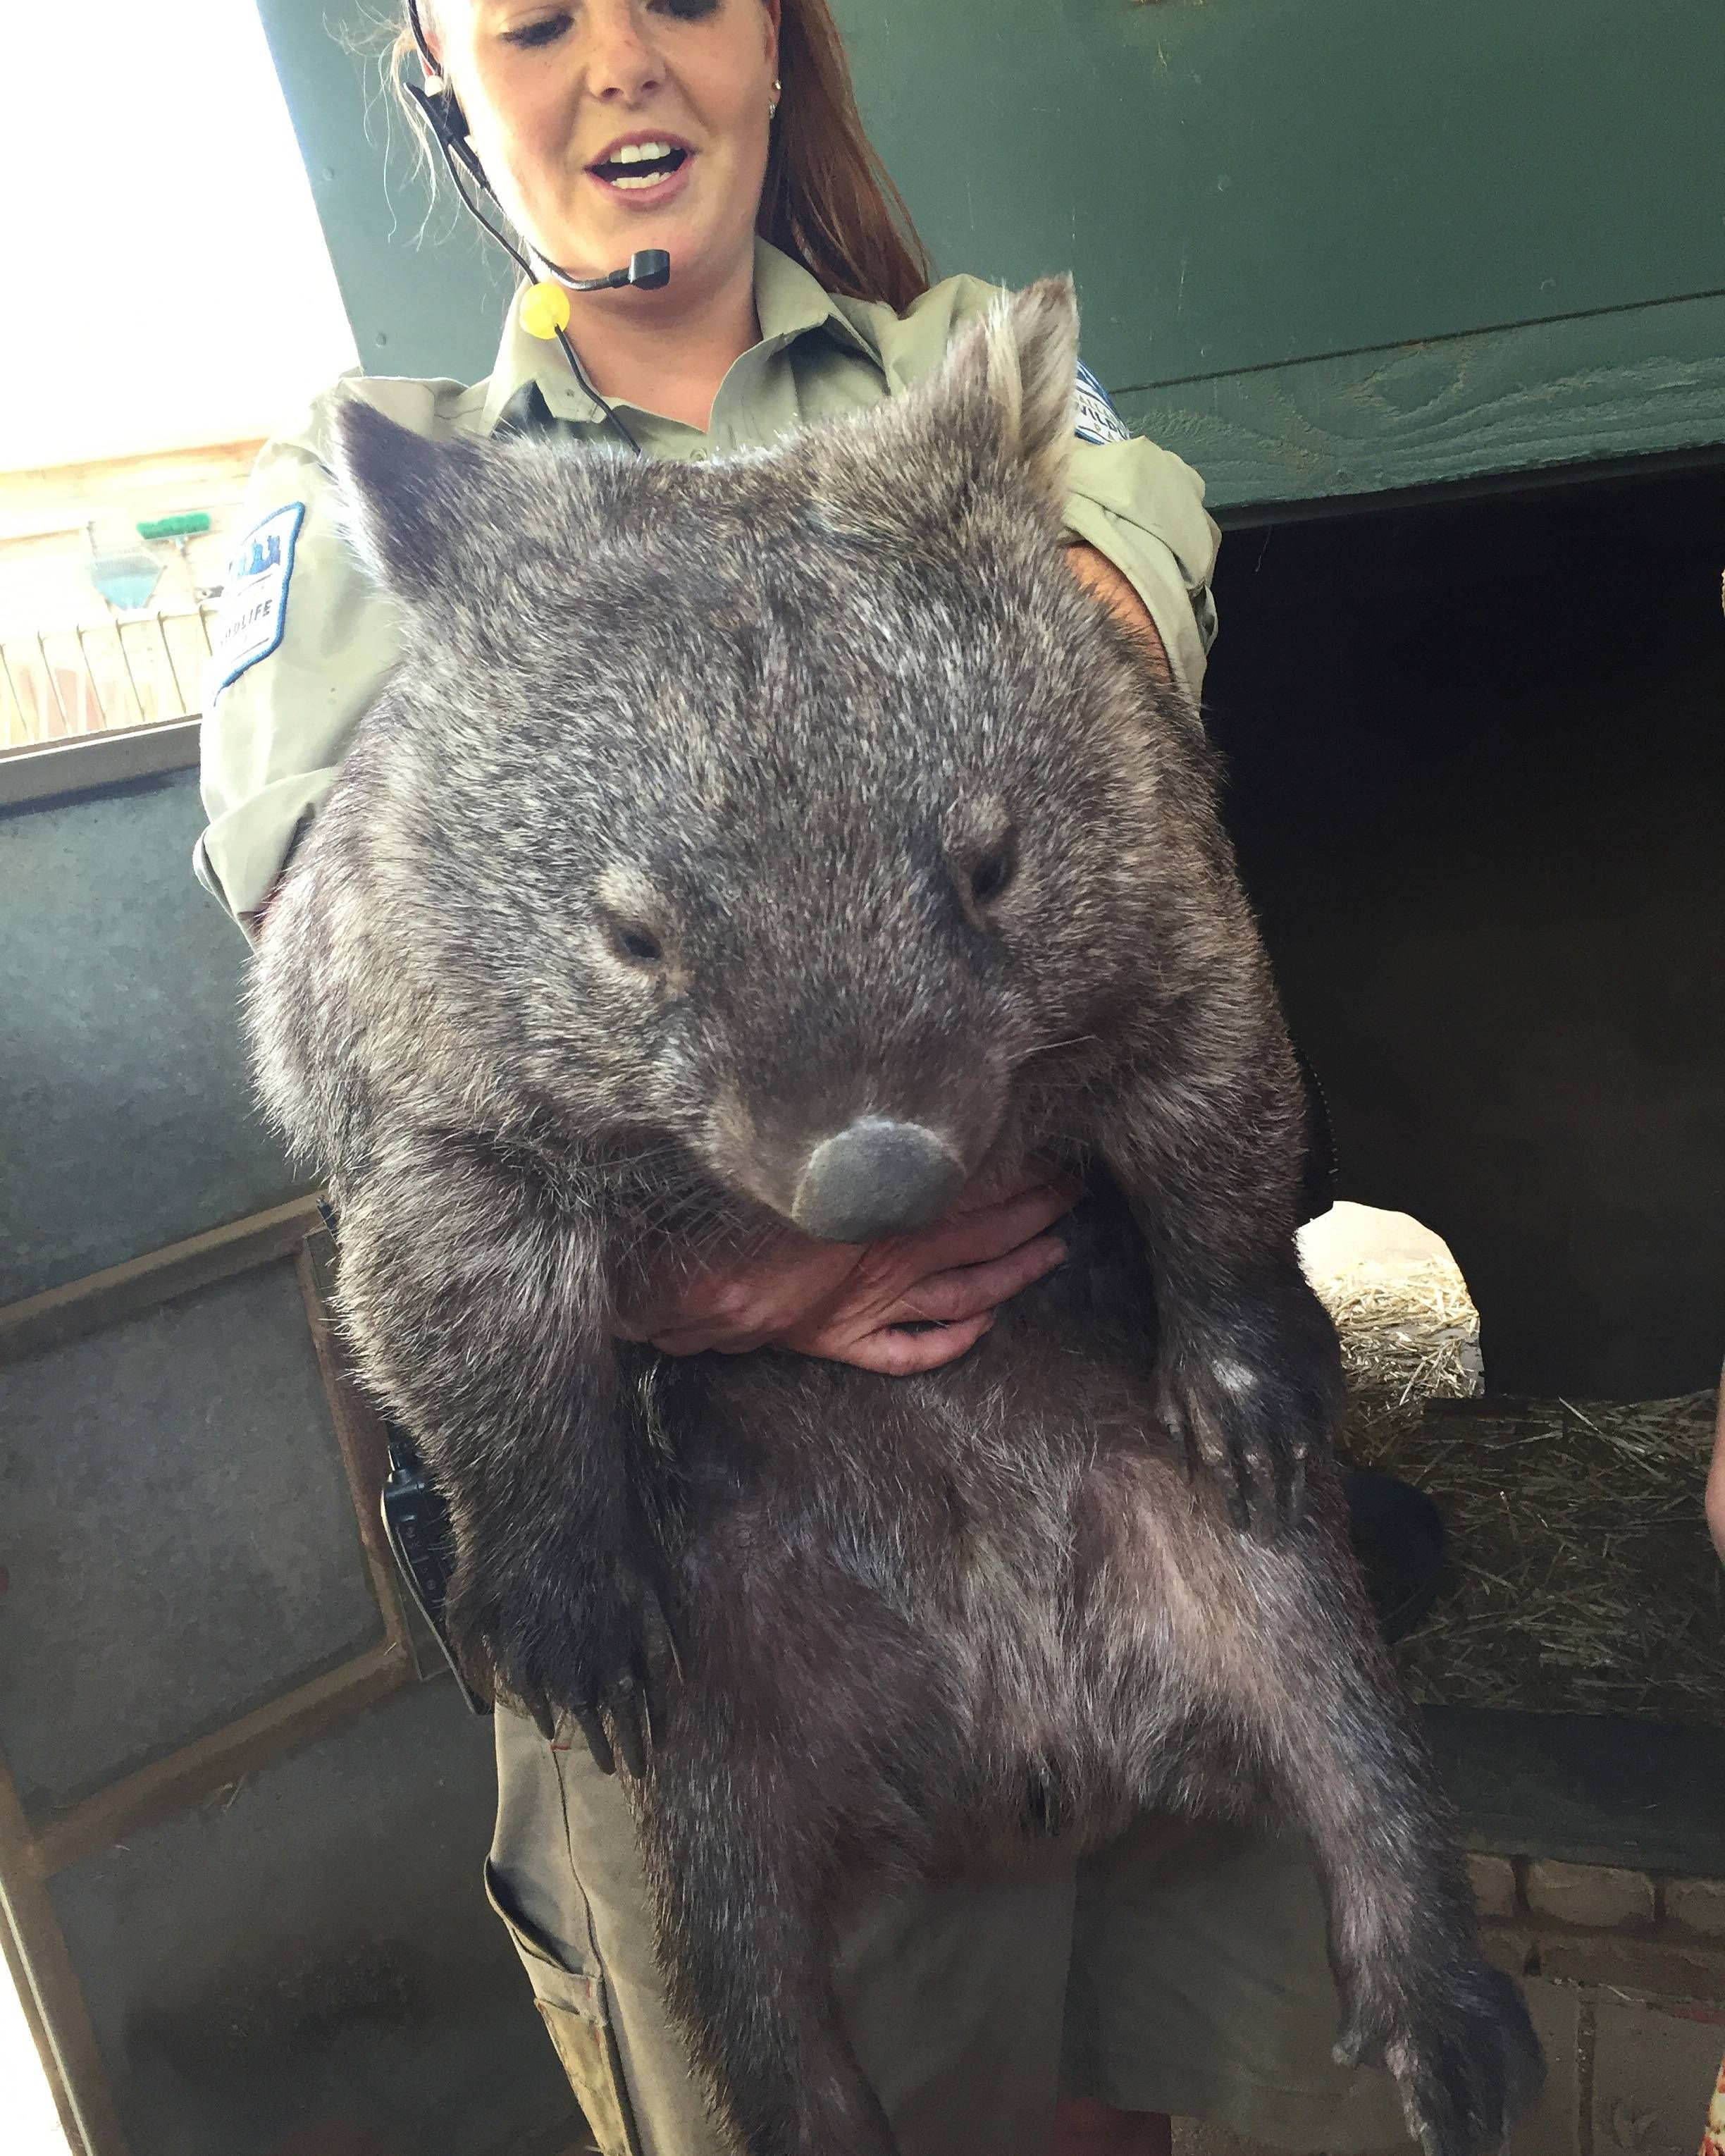 This is Patrick again the world's largest wombat. follow @GalaxyCase to see more cutest animals kids .... and learn way to make #uniqe #personalized #Samsung #Galaxy S4/S5/S6 Note 4/5 Case Cover